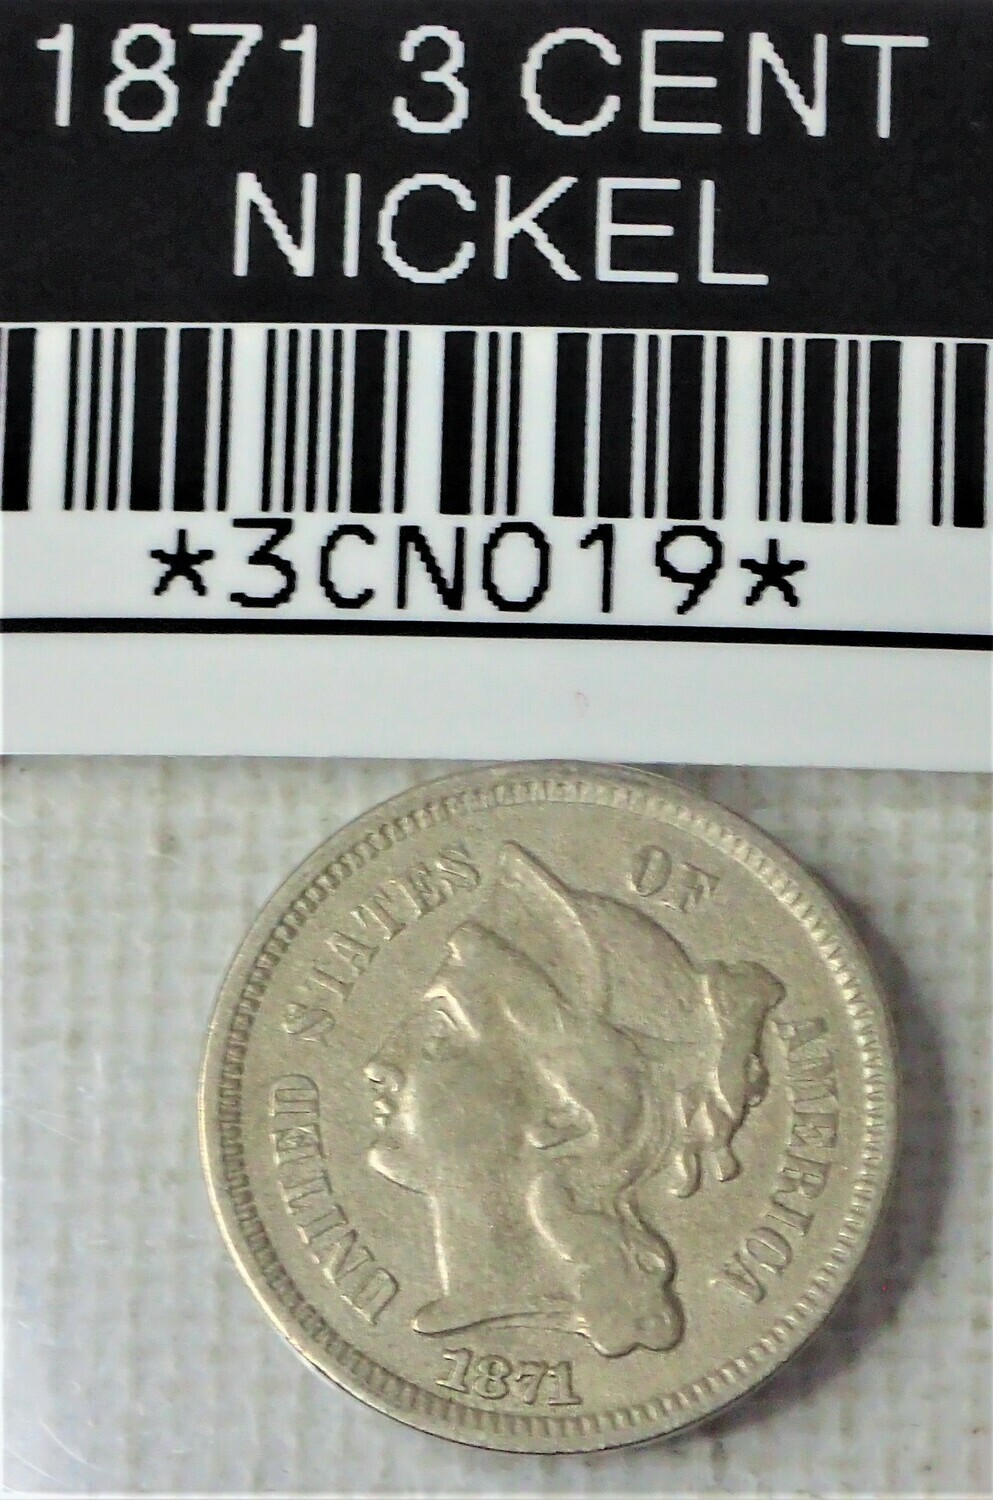 1871 3 CENT NICKEL 3CN019